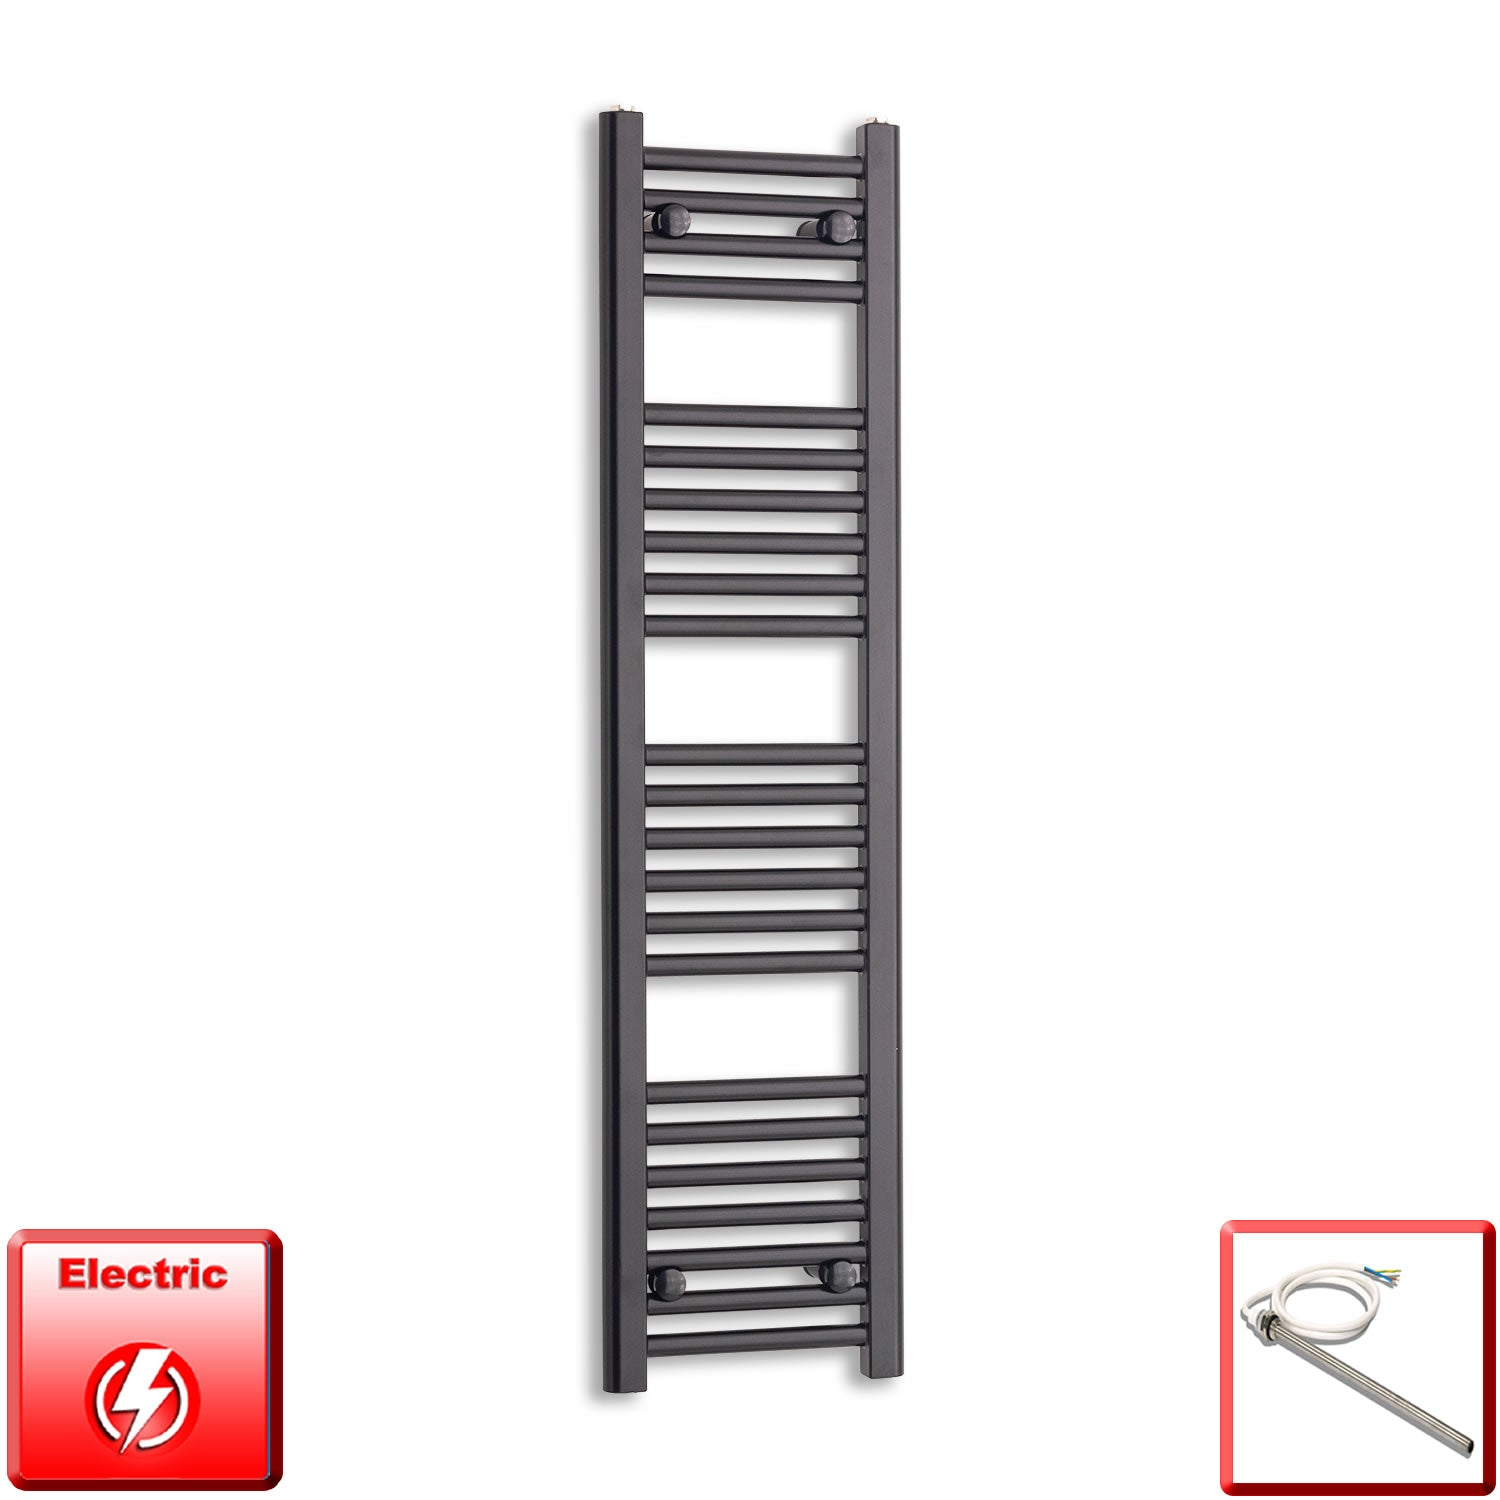 300mm Wide 1200mm High Pre-Filled Black Electric Towel Rail Radiator With Single Heat Element